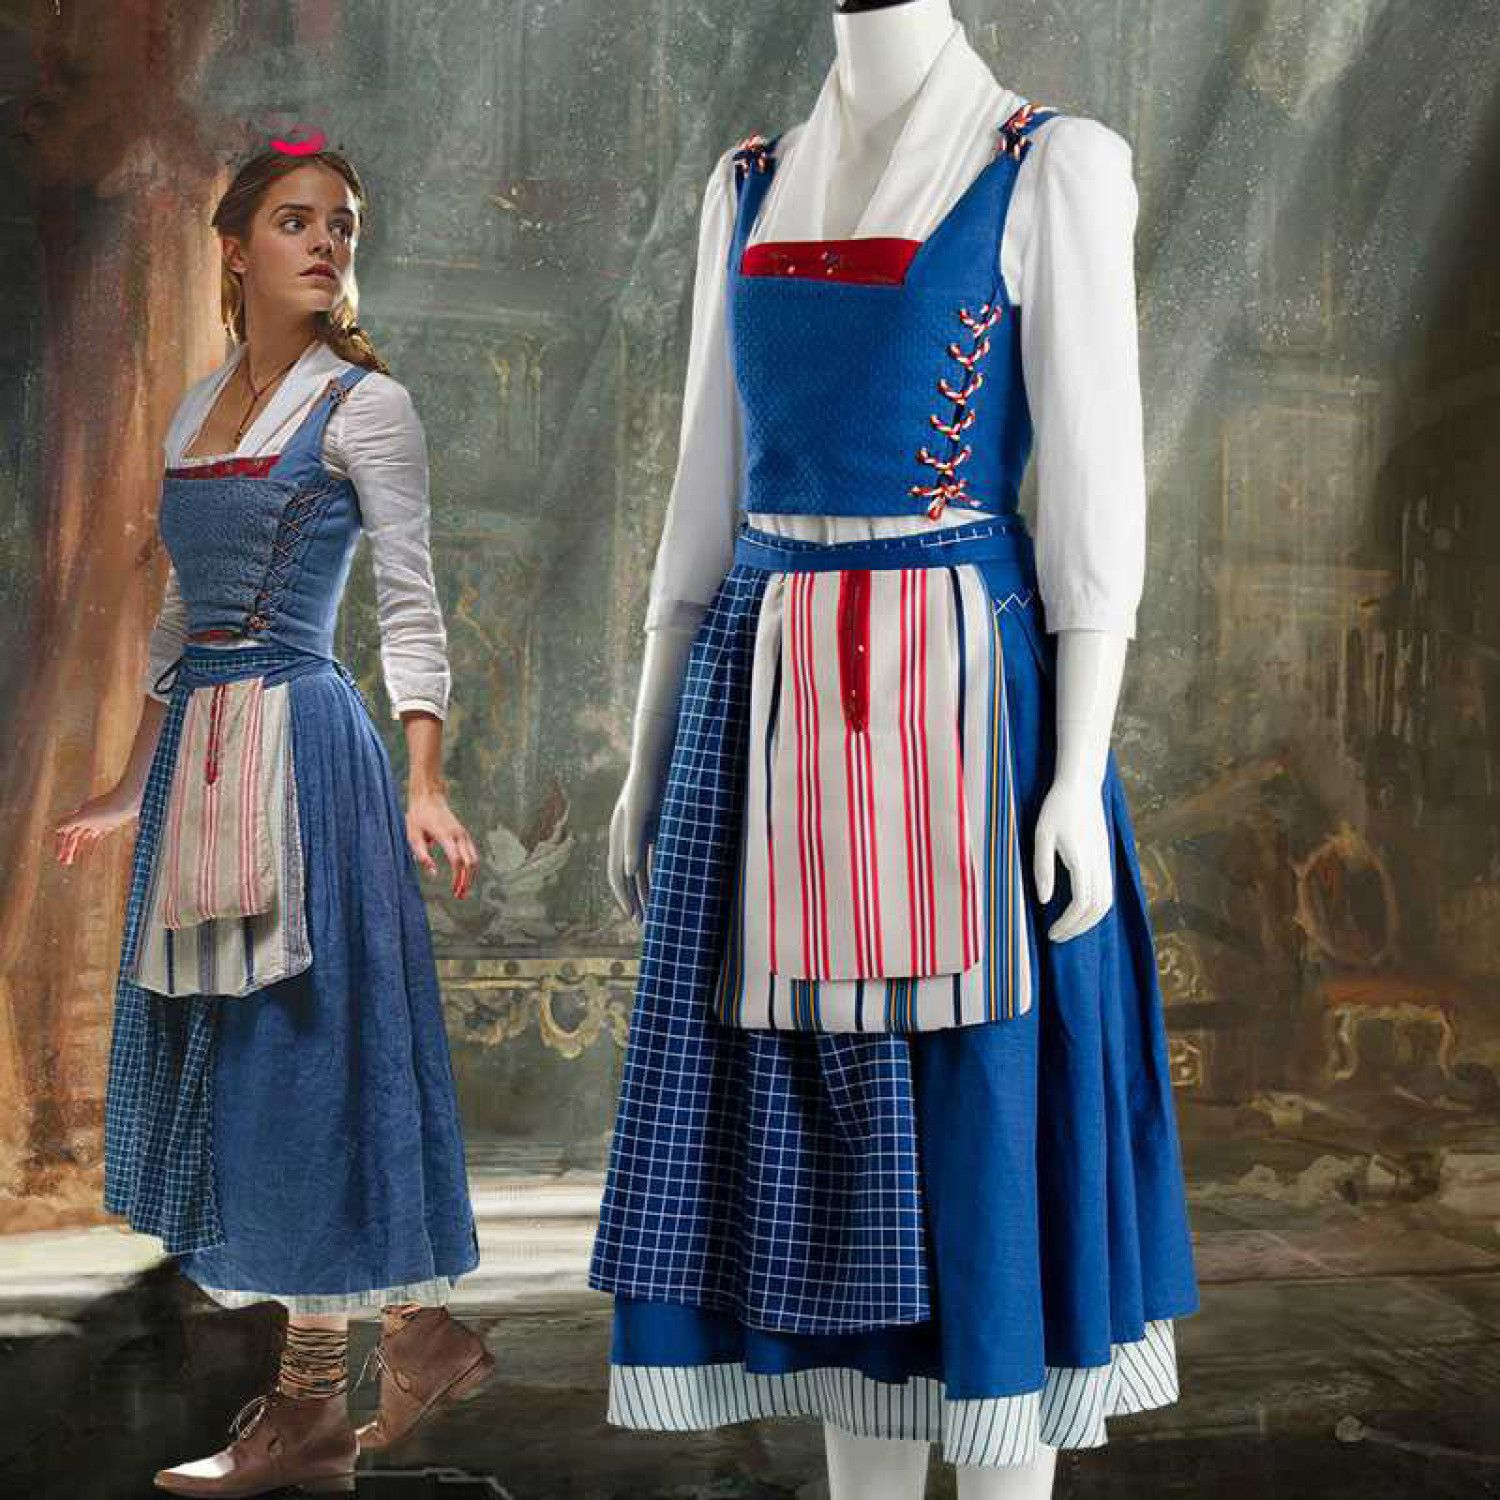 Beauty and the Beast Belle Maid Cosplay Dress Emma Watson Full Outfit